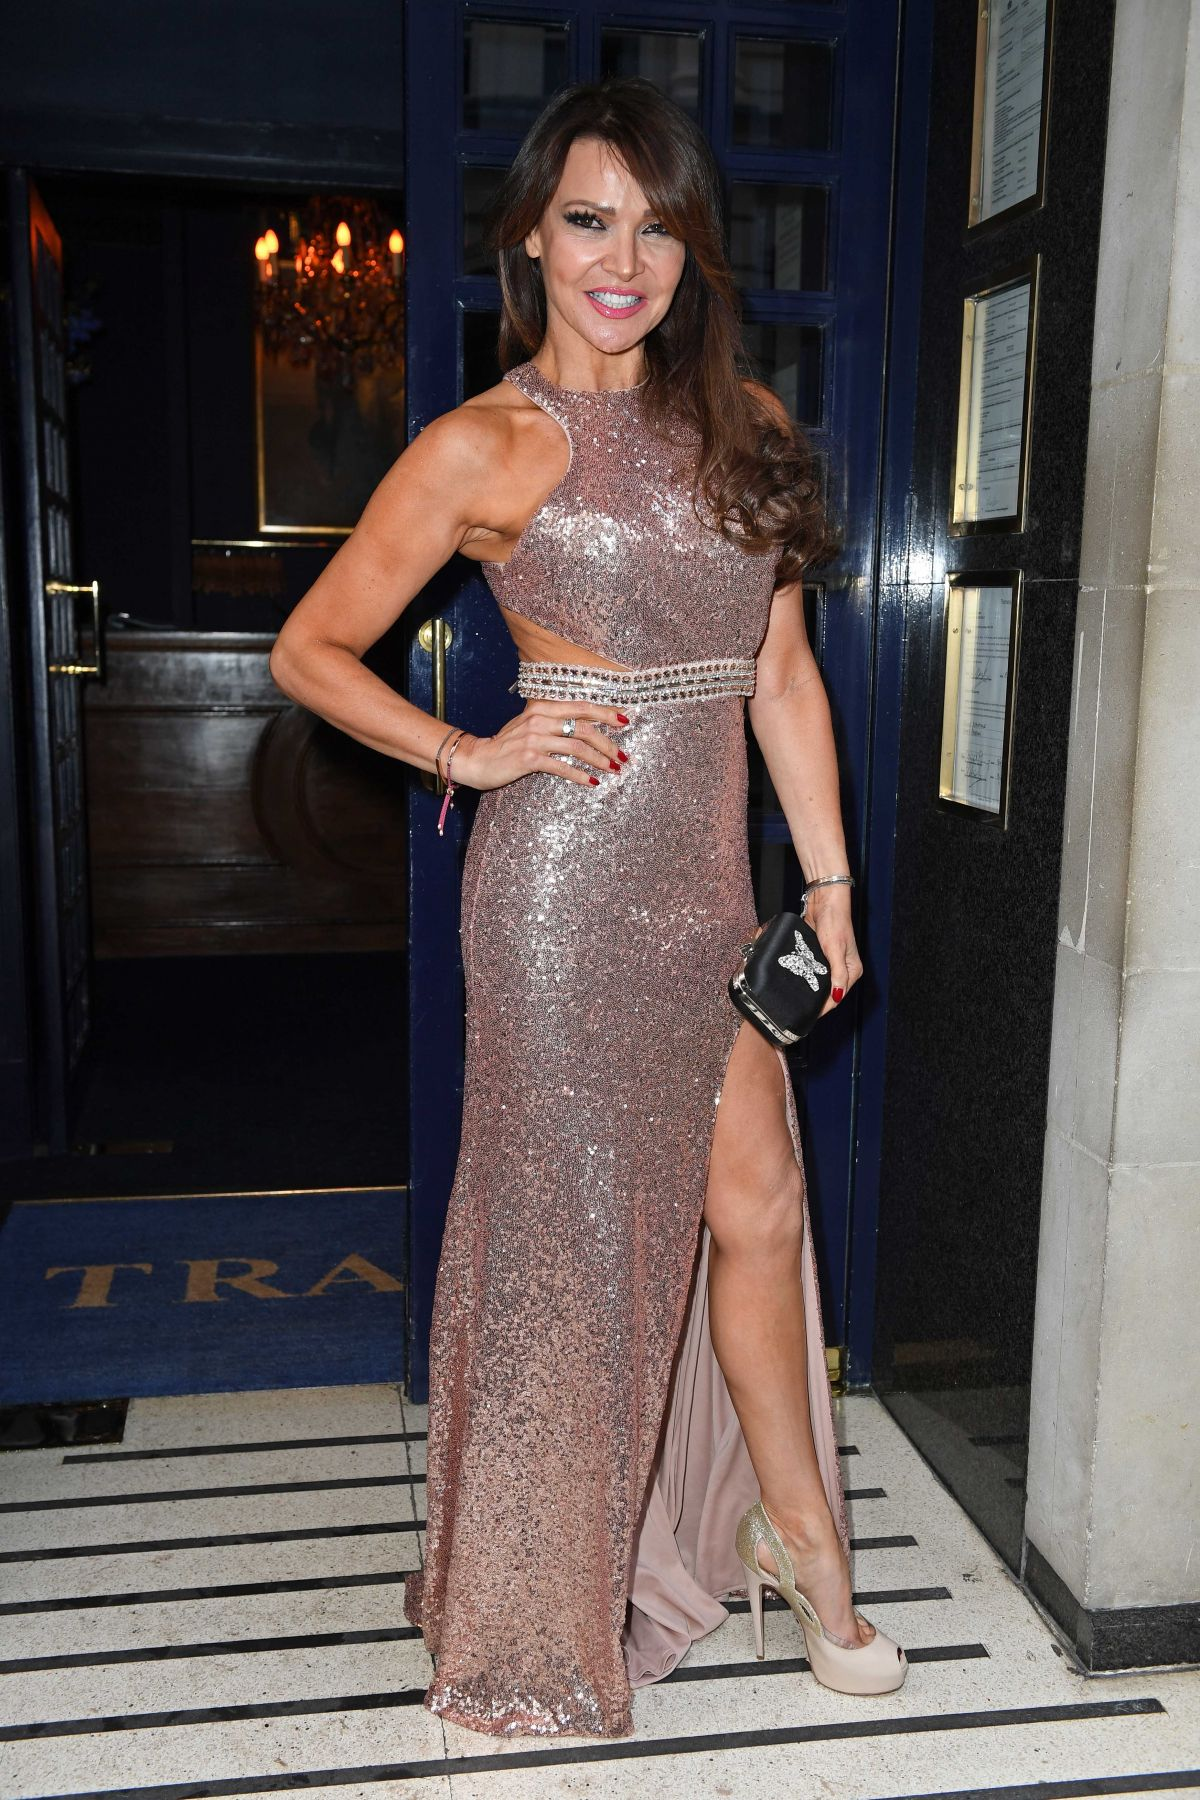 Celebrites Lizzie Cundy nudes (49 photo), Sexy, Hot, Selfie, swimsuit 2006